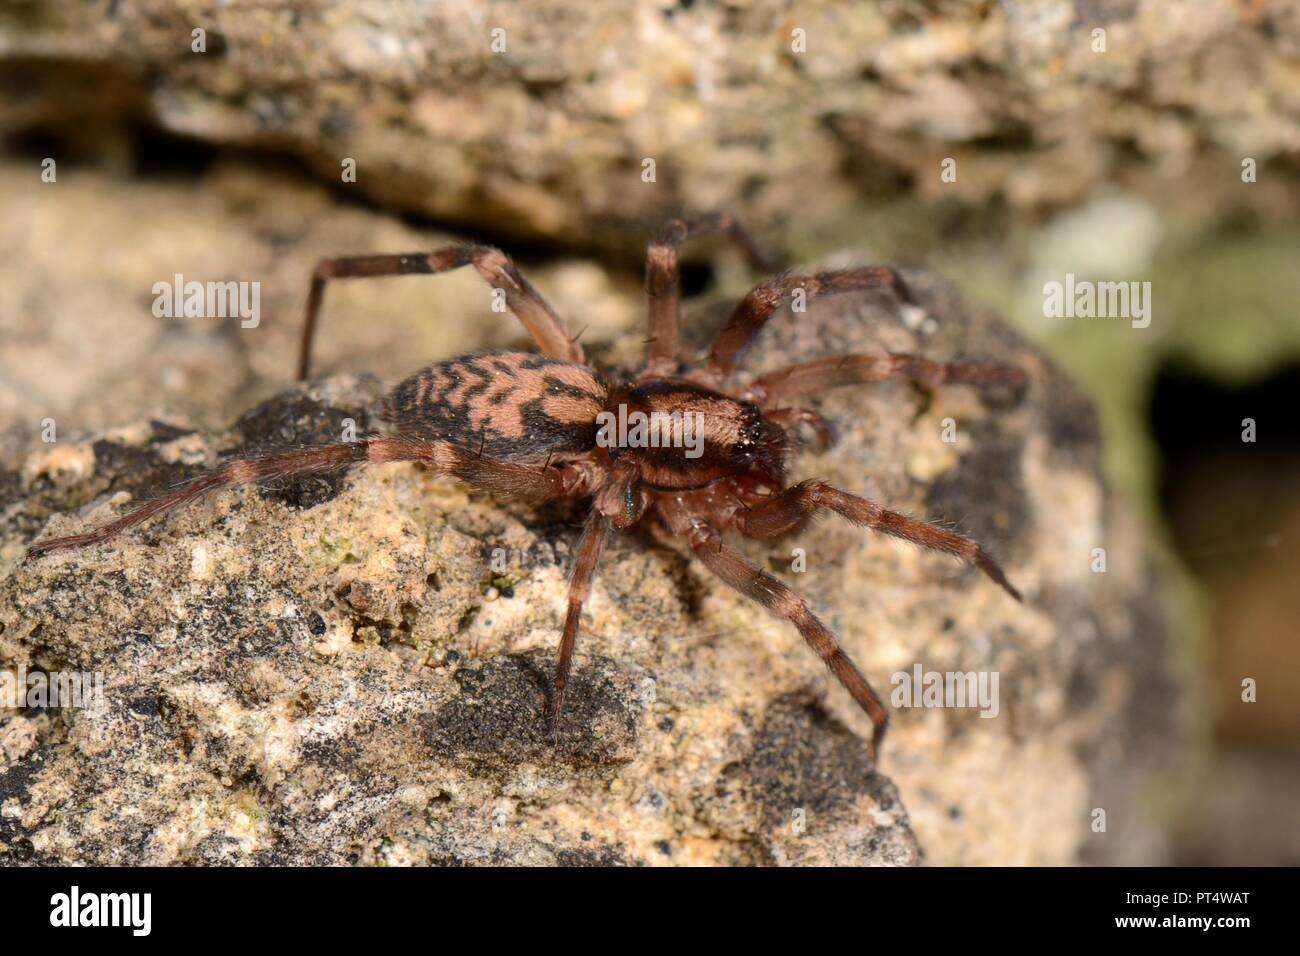 Running foliage spider (Liocranum rupicola), a nationally scarce species in the UK, hunting at night in an old stone wall, Box, Wiltshire, UK, October Stock Photo